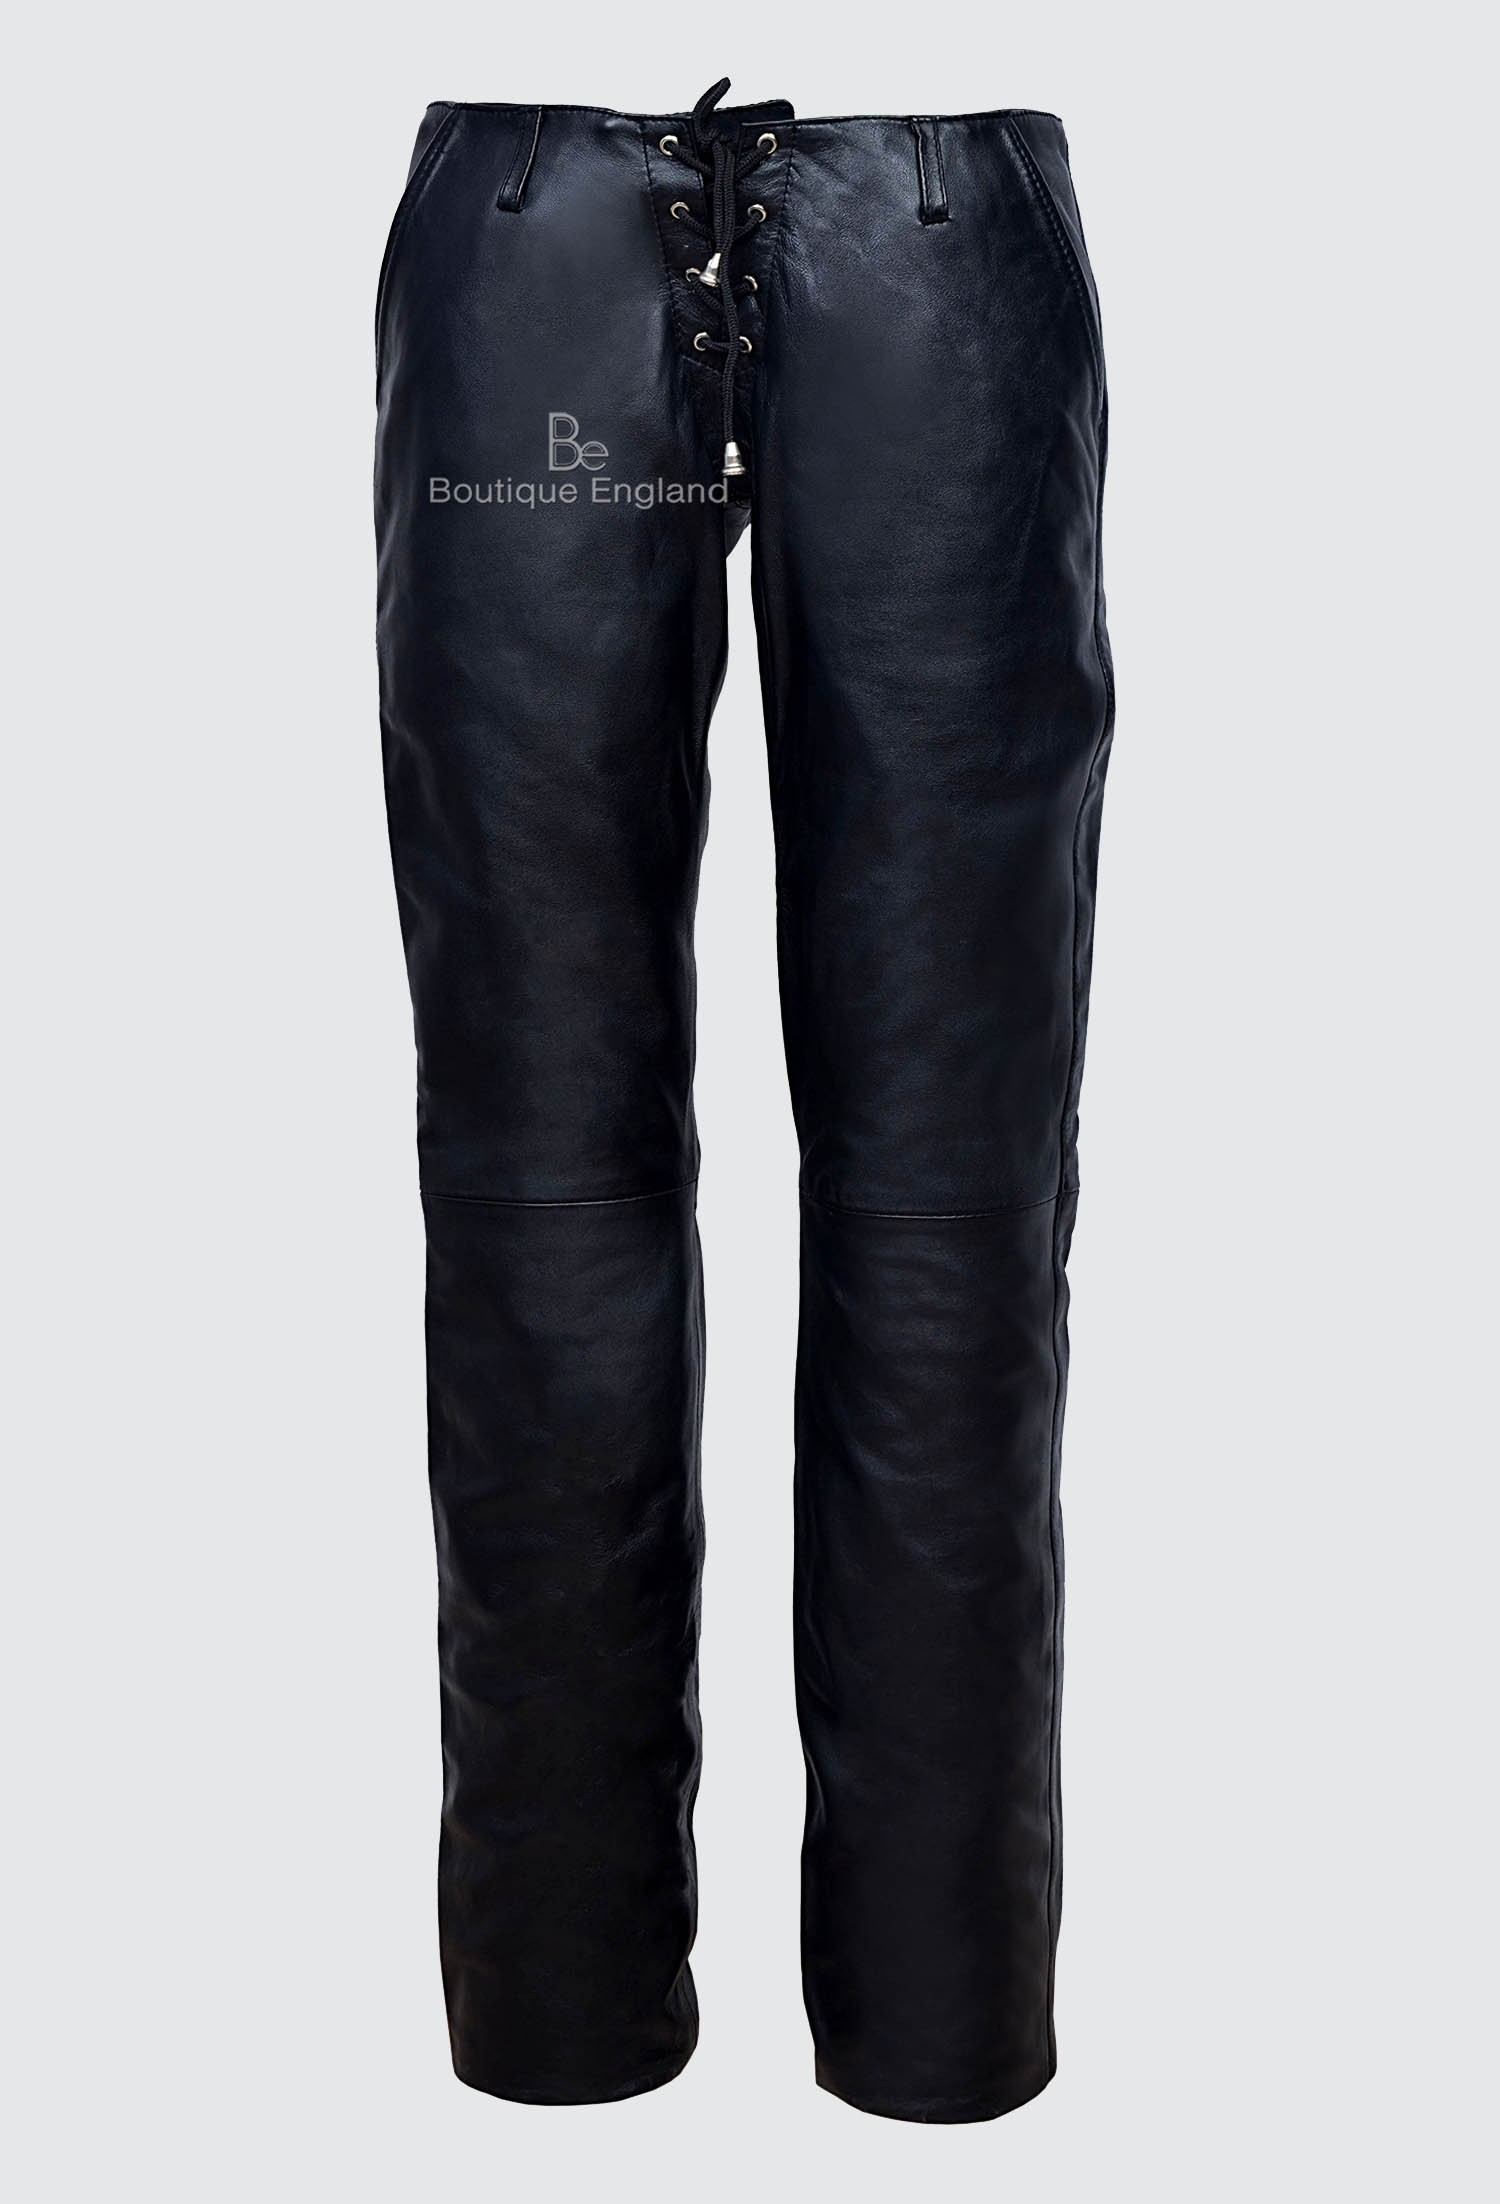 Ladies Leather Trouser Black Low Waist HIPSTER STYLE REAL NAPA LEATHER 4326-B